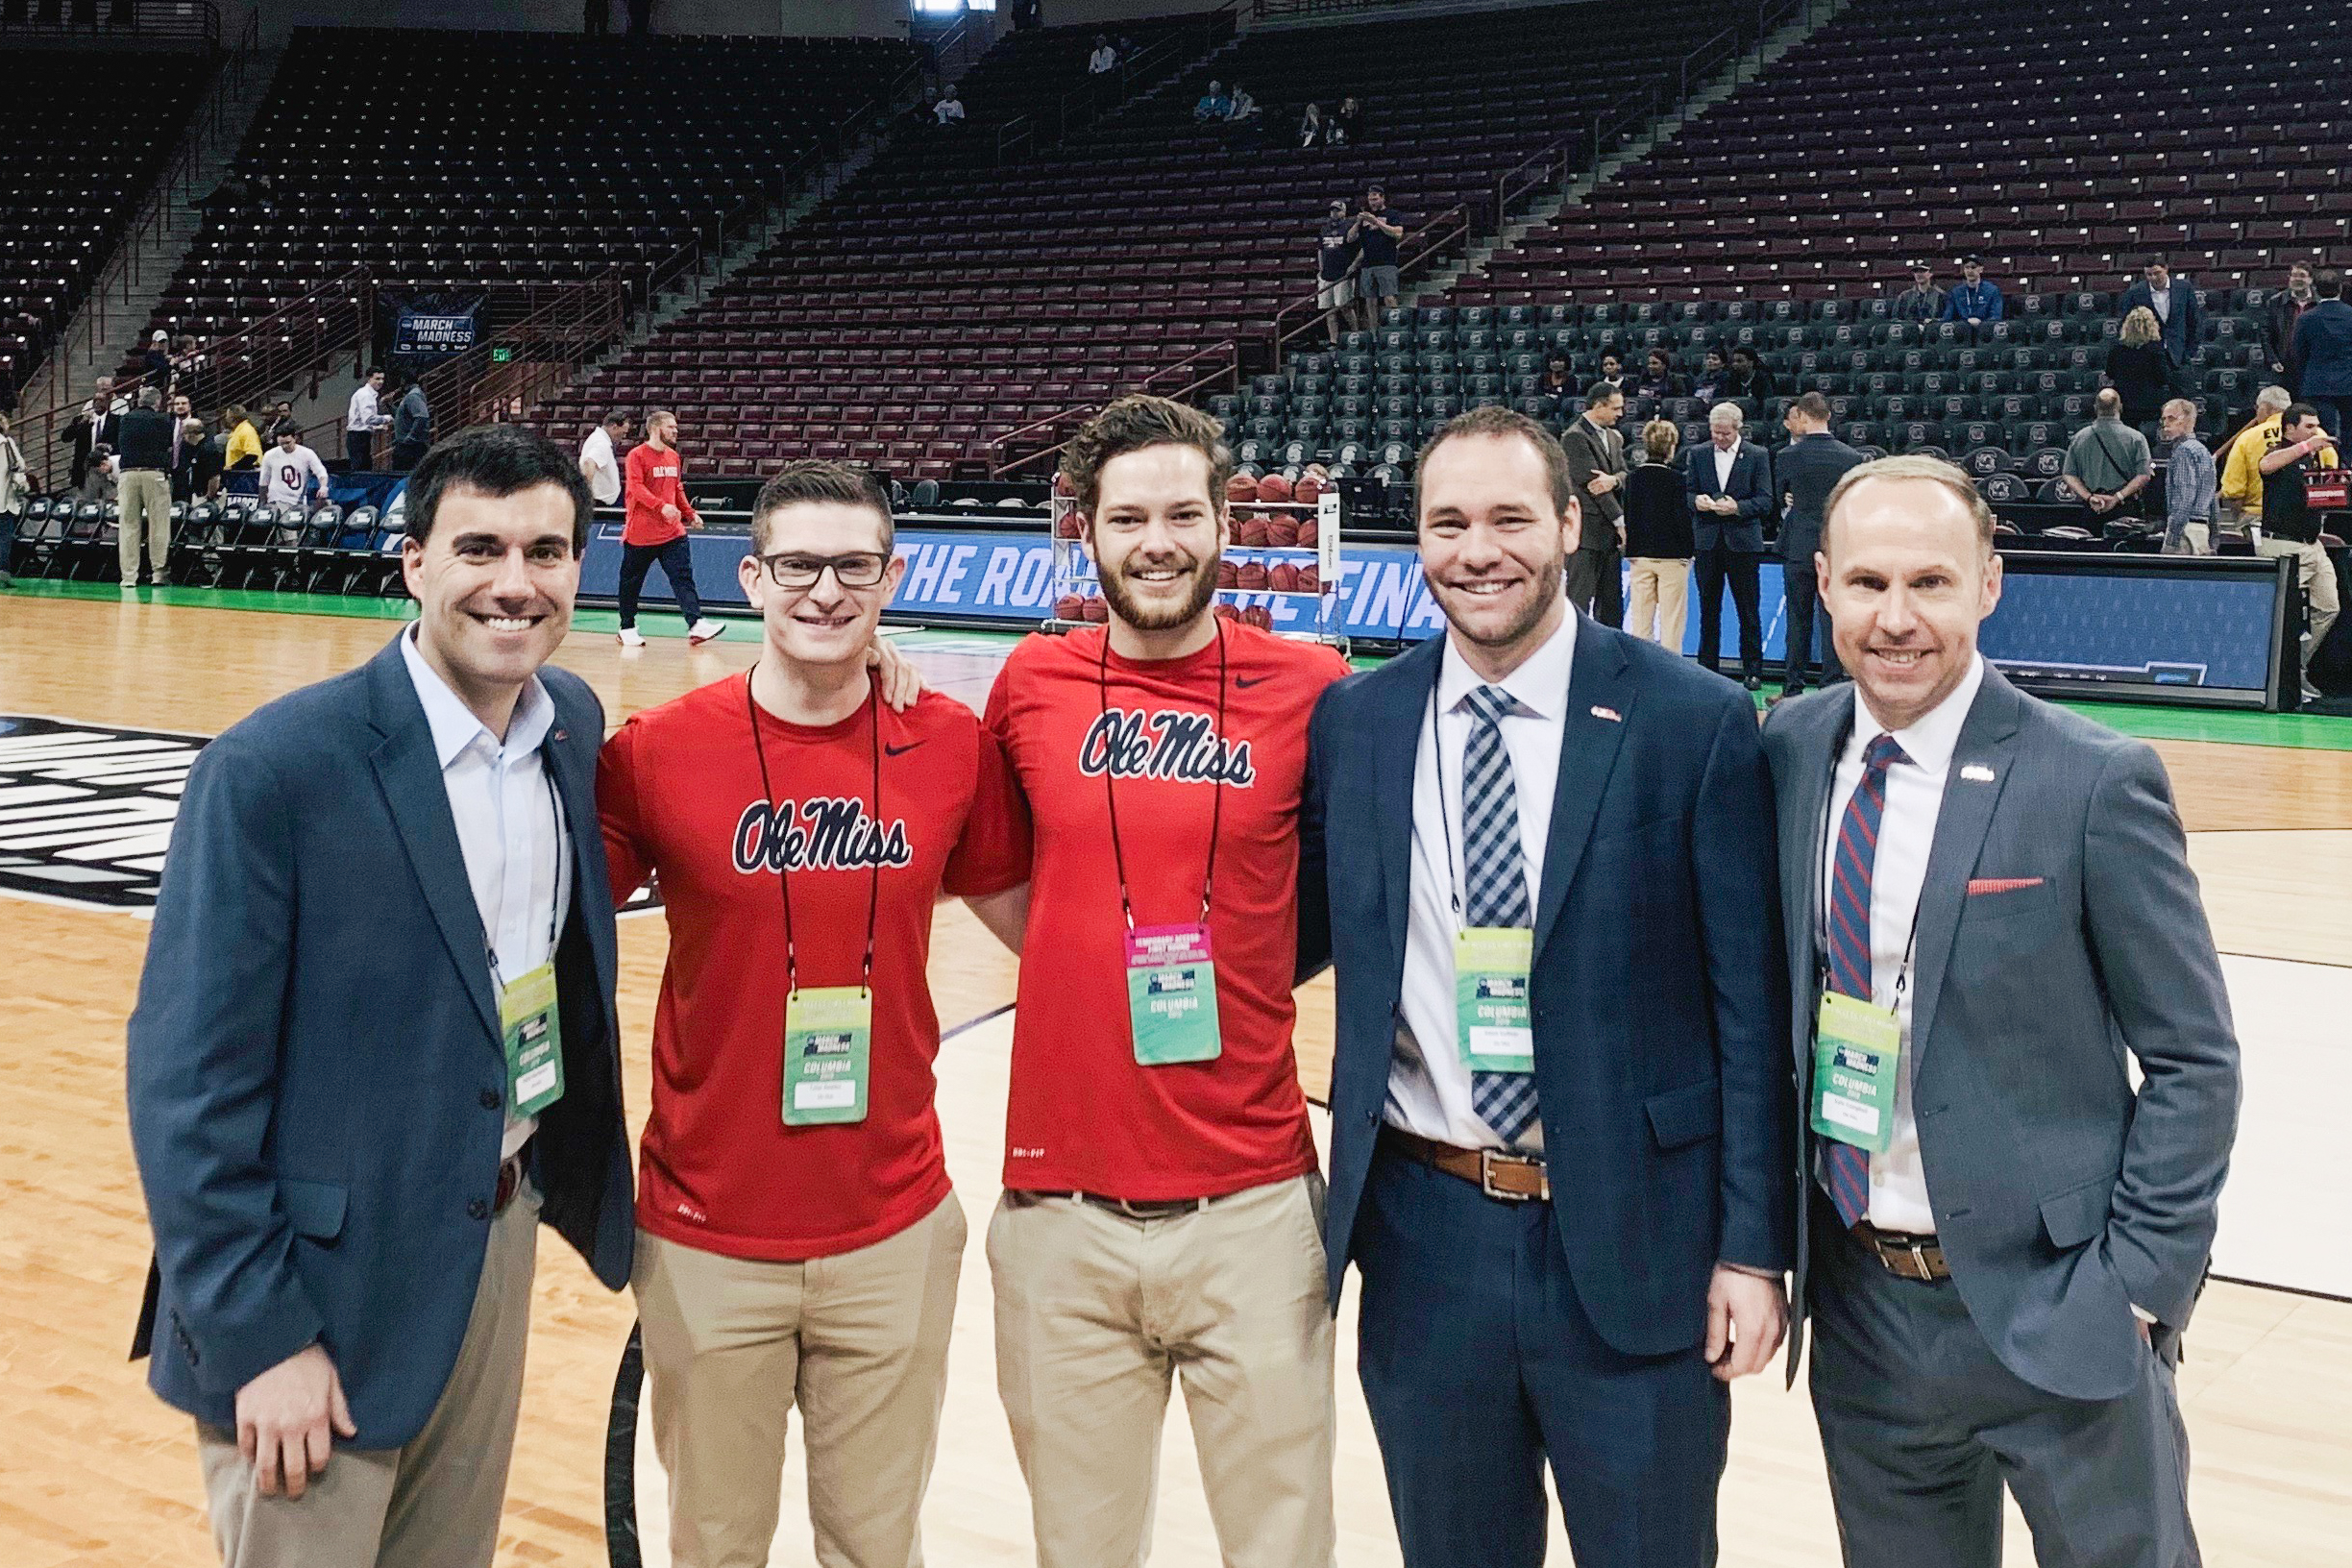 Paris Buchanan and co-workers before an Ole Miss vs. Oklahoma NCAA men's basketball tournament in Columbia, S.C., in March 2019. | Credit: Paris Buchanan